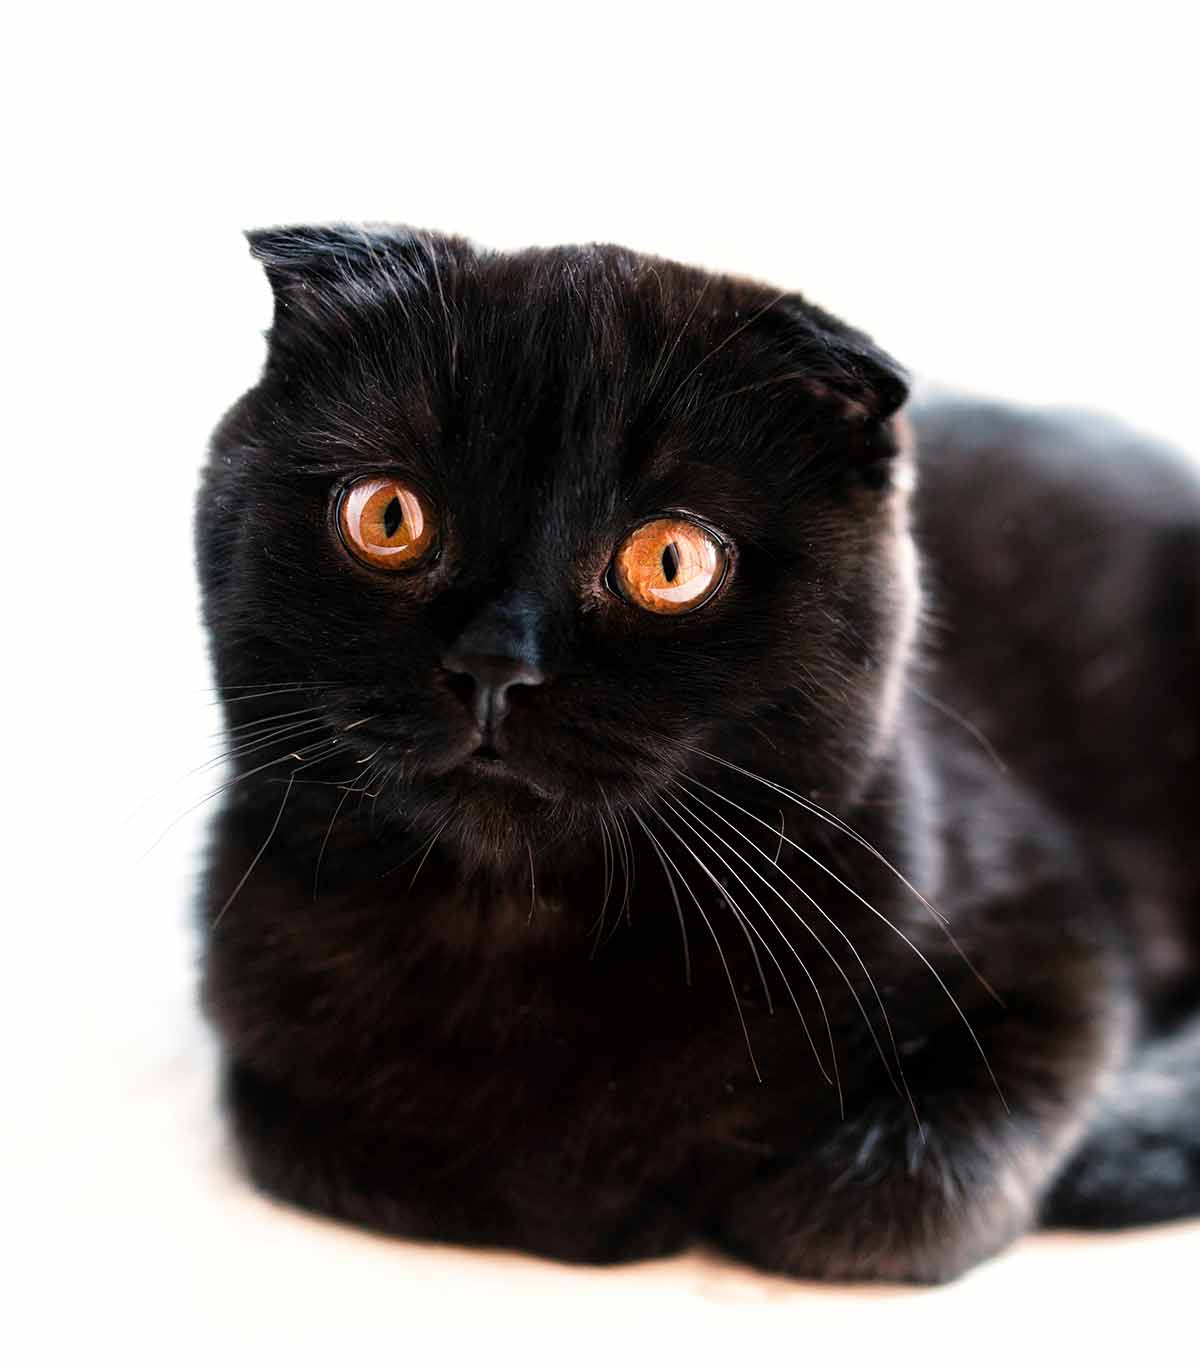 black cat breeds - scottish fold